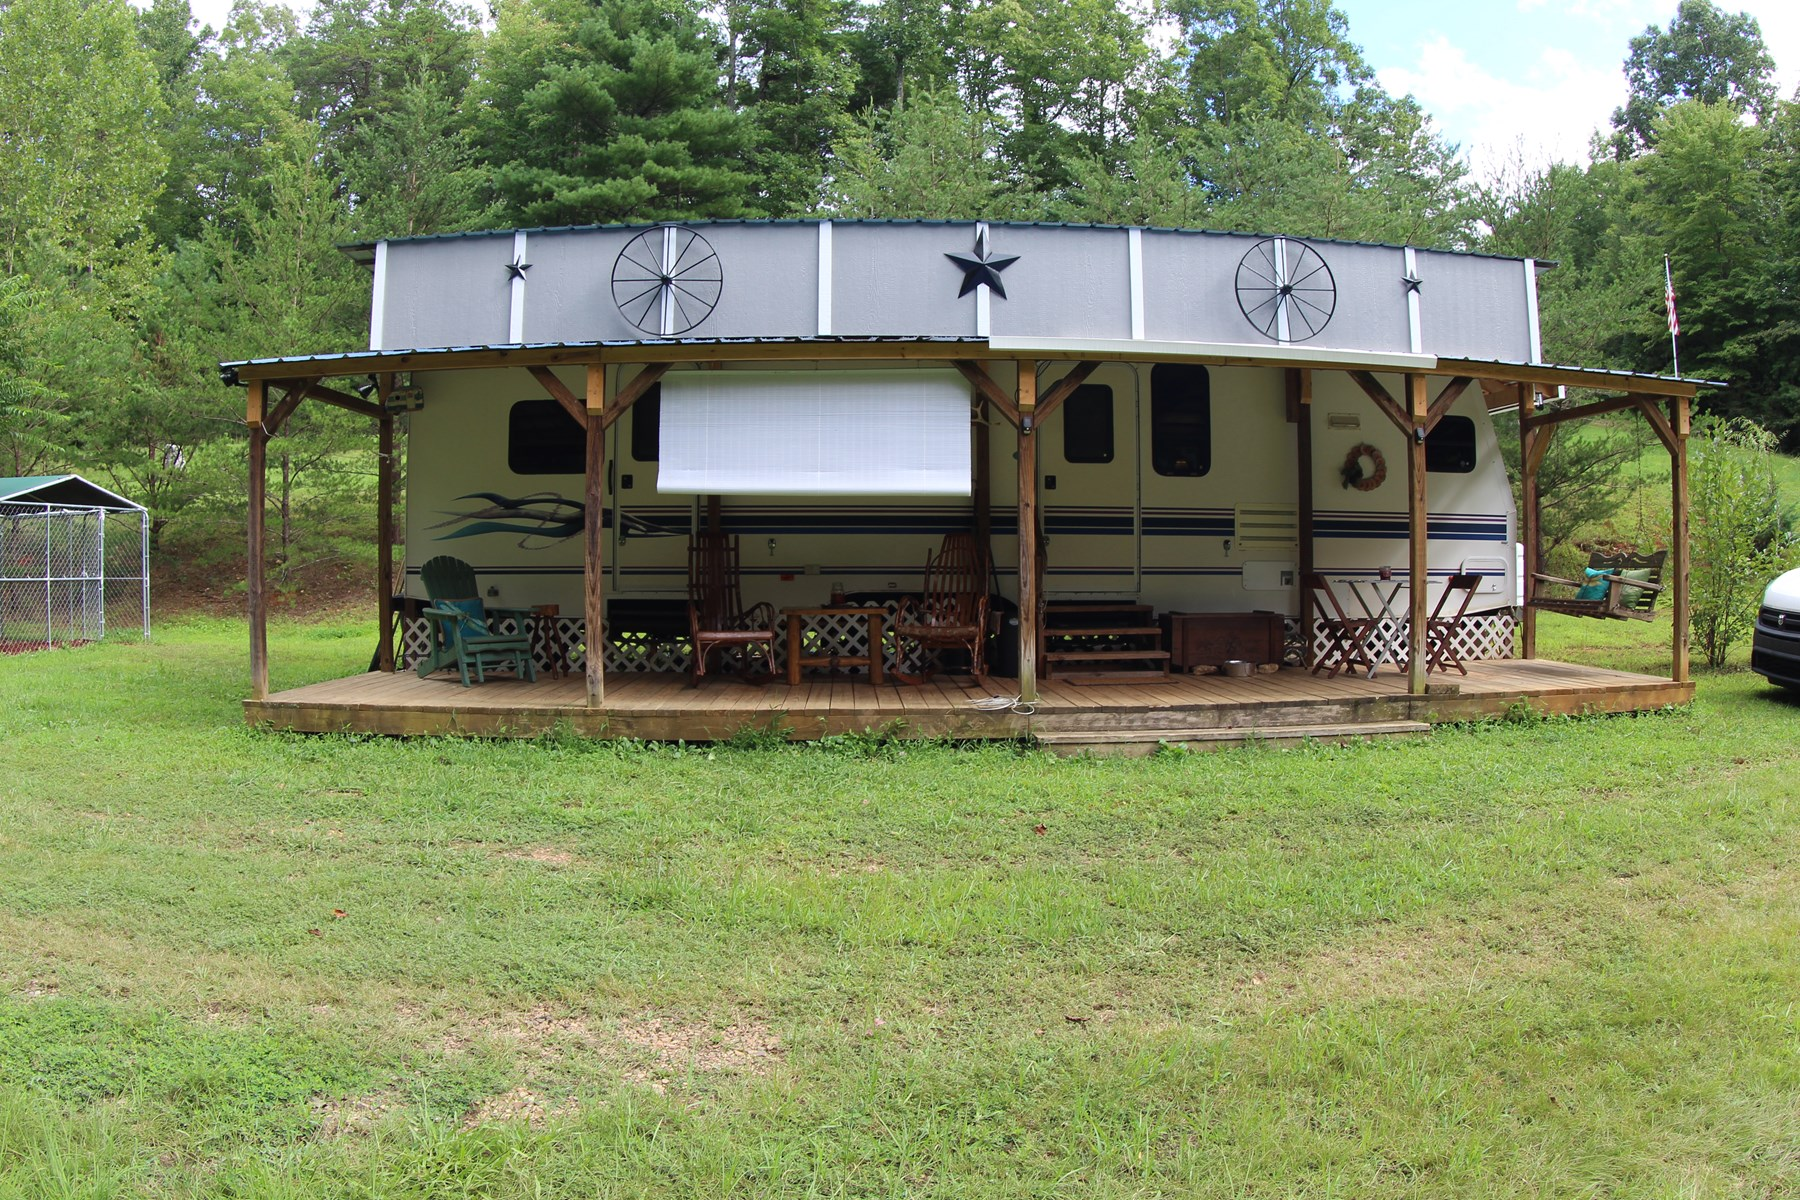 RV CAMPER WITH FRONT DECK LOCATED IN PATRICK COUNTY, VA